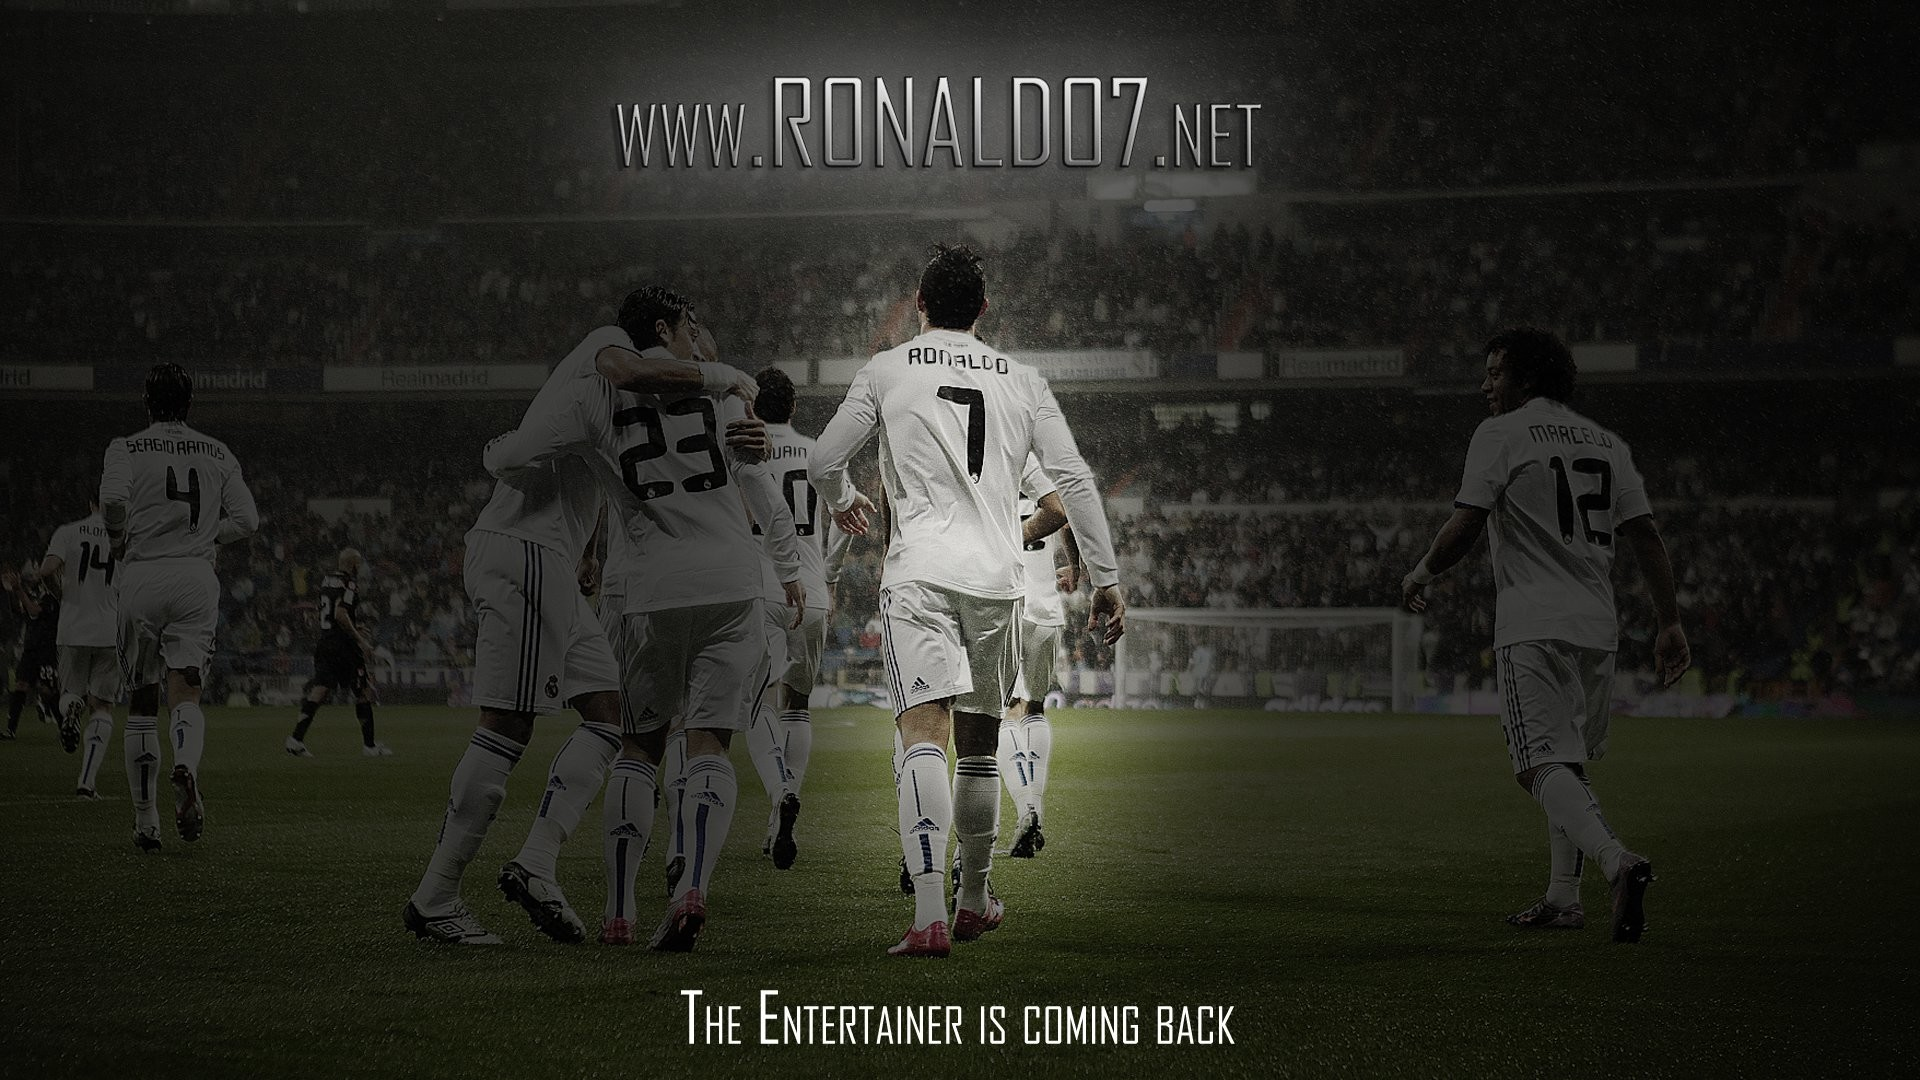 Cristiano Ronaldo wallpaper in Full HD (1920×1080): The entertainer is  coming back